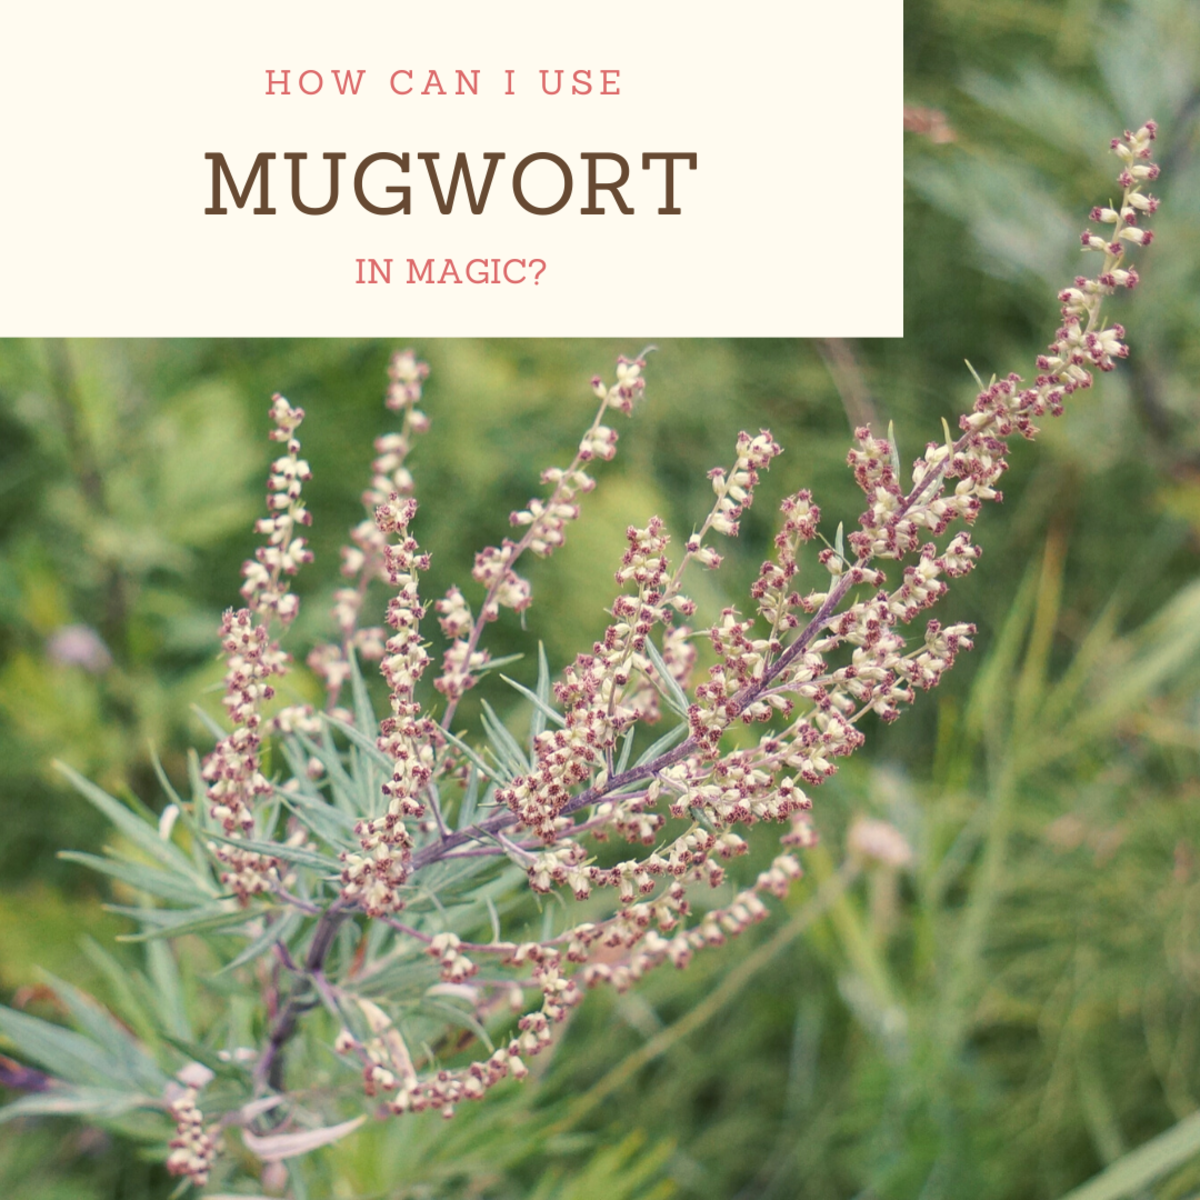 Mugwort has been used in many ways throughout history, but it should be used with caution.